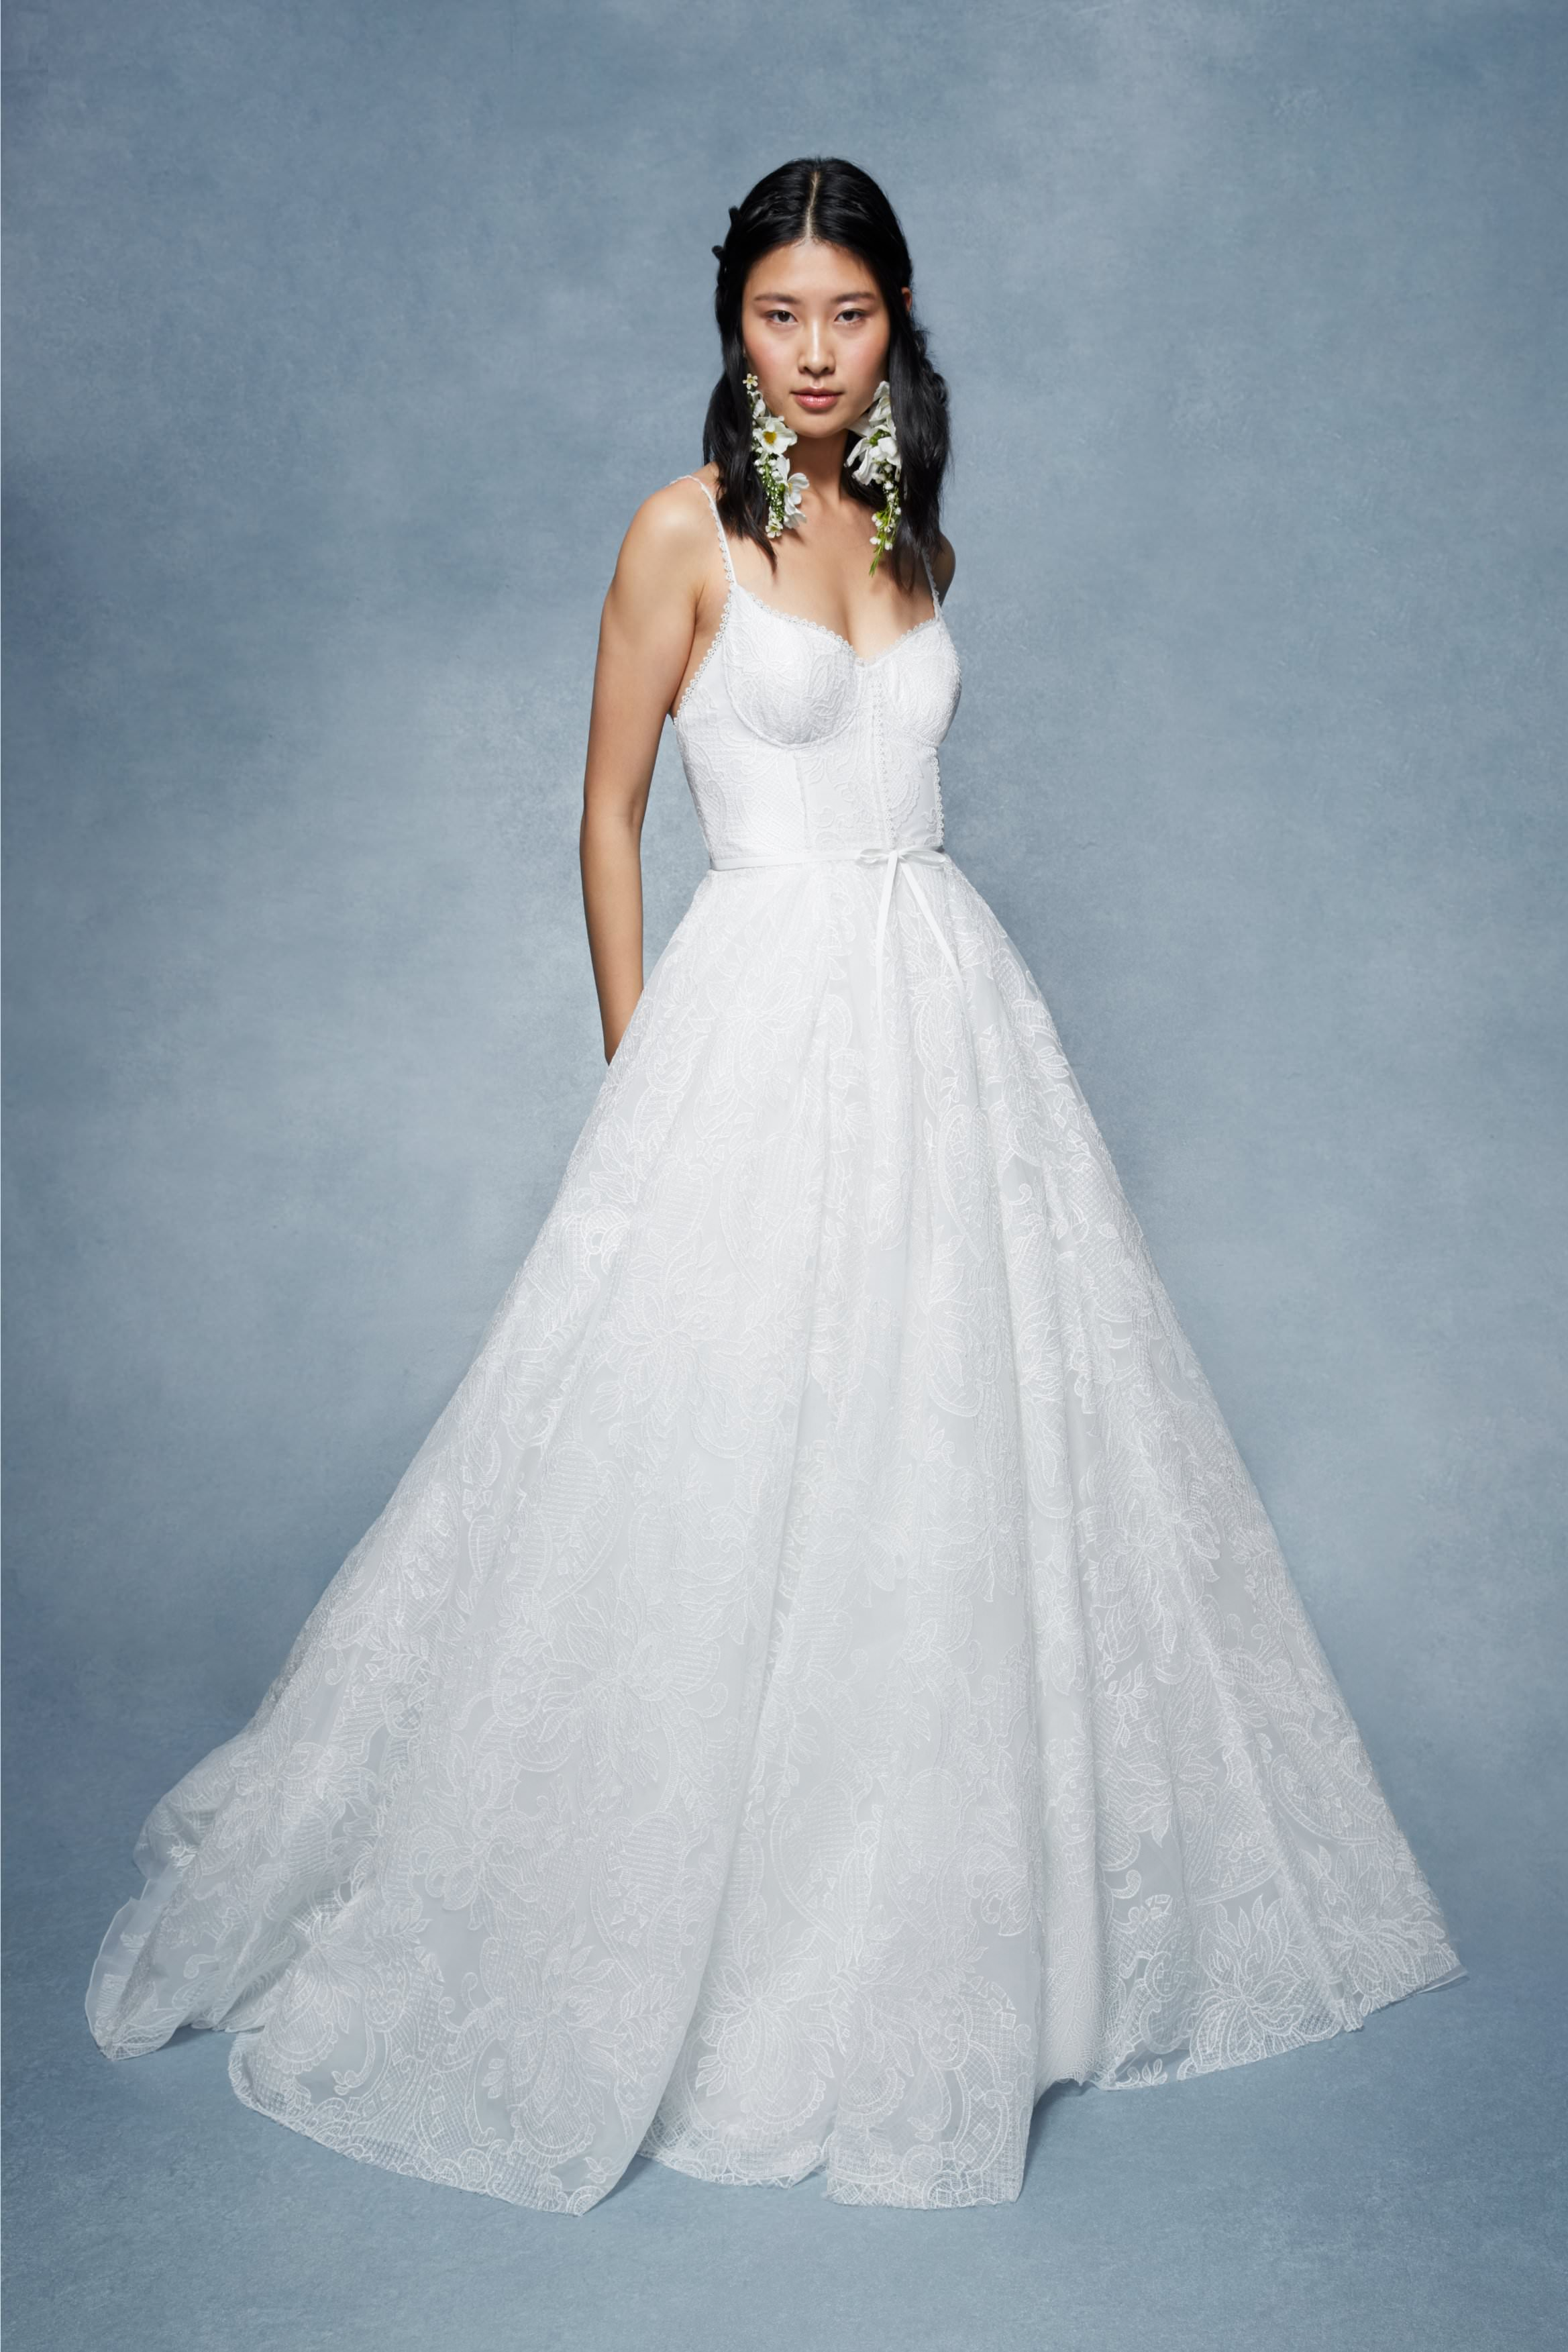 Irina by Marchesa Notte. Marchesa in San Diego at The White Flower BRidal Boutique.